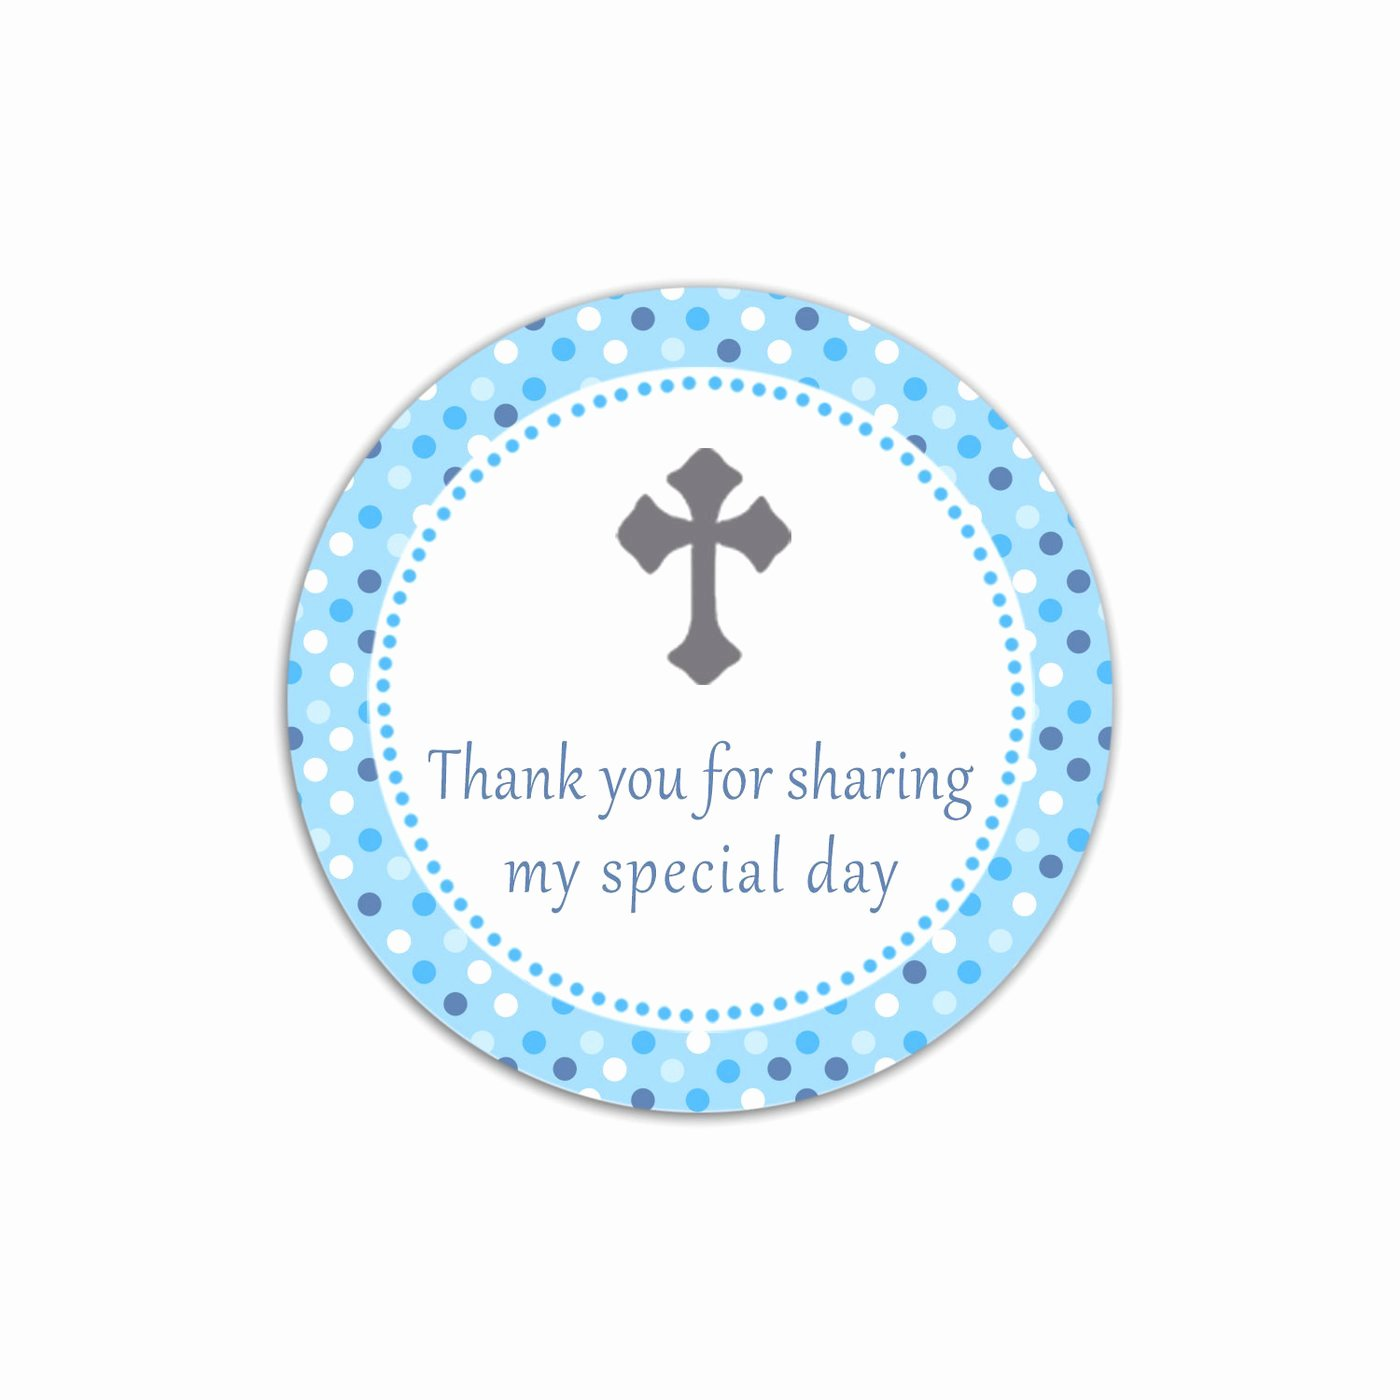 Baptism Thank You Tags New Christening Boy Baptism Favor Label Tag Blue Gray Printable – Pink the Cat